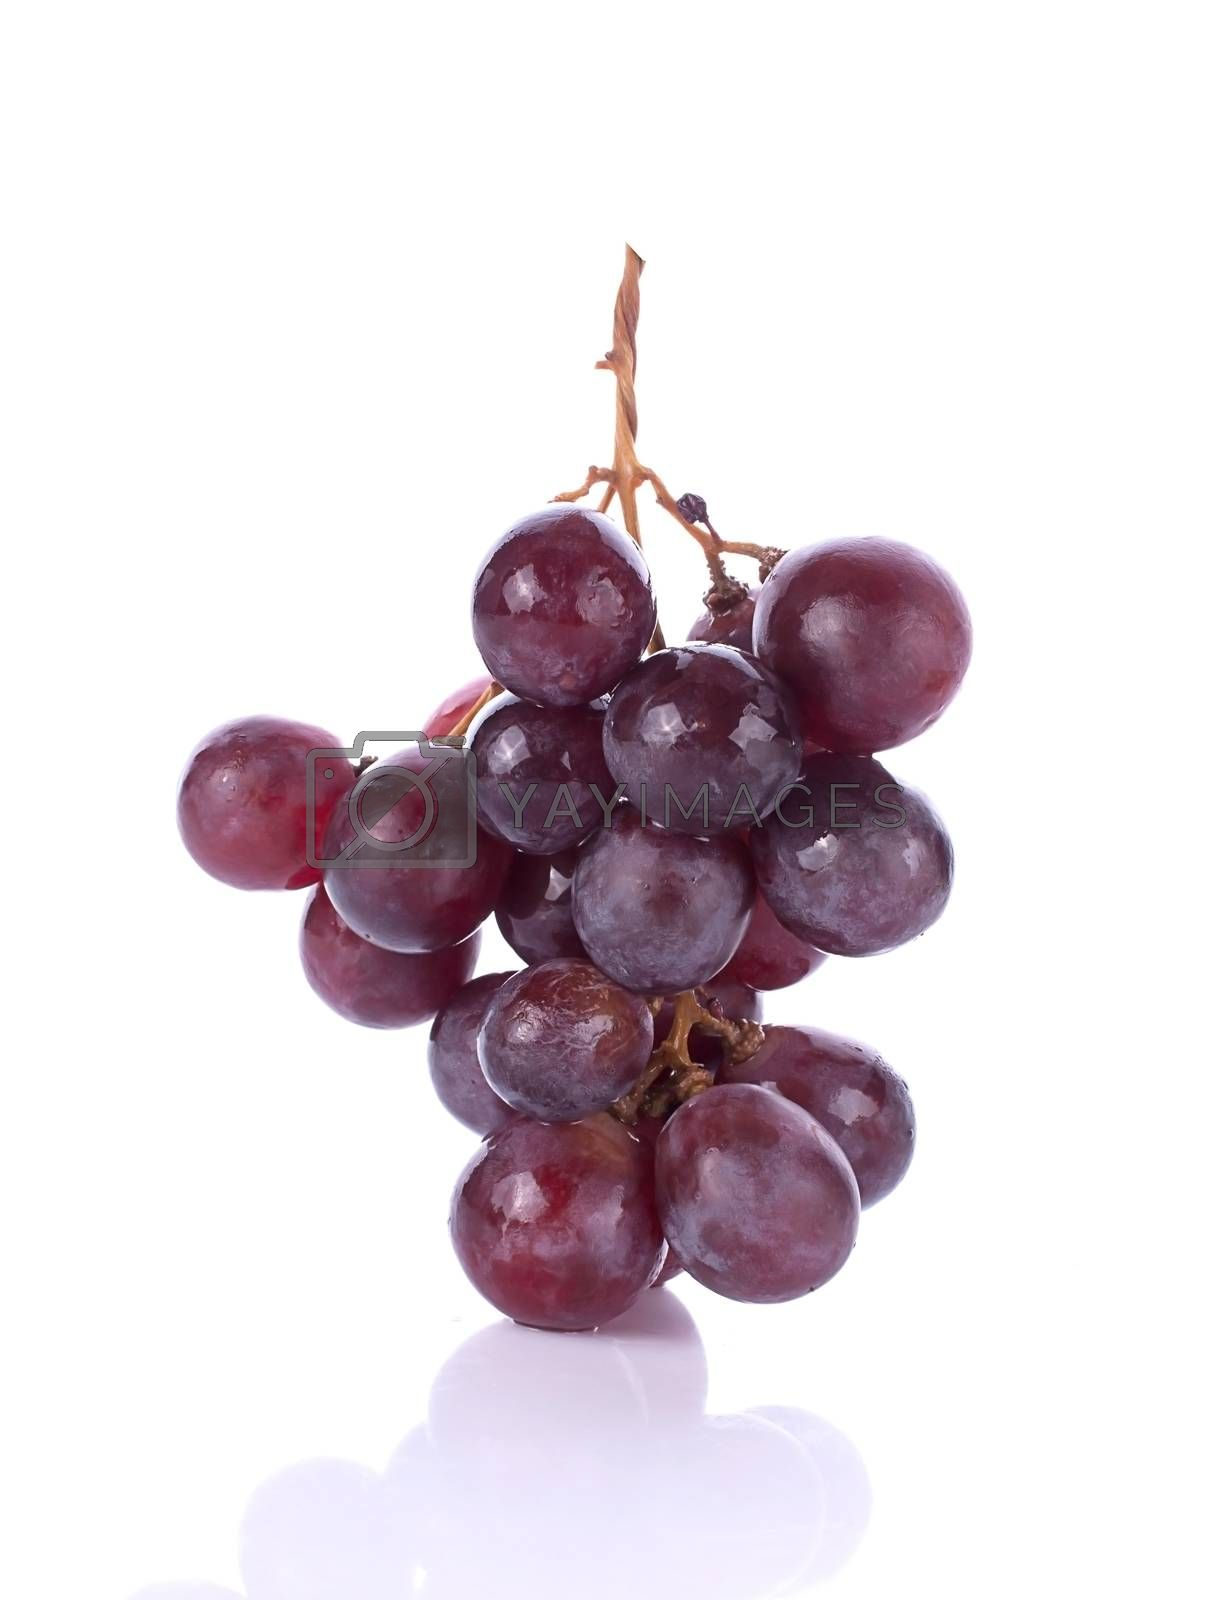 grape berry close up background